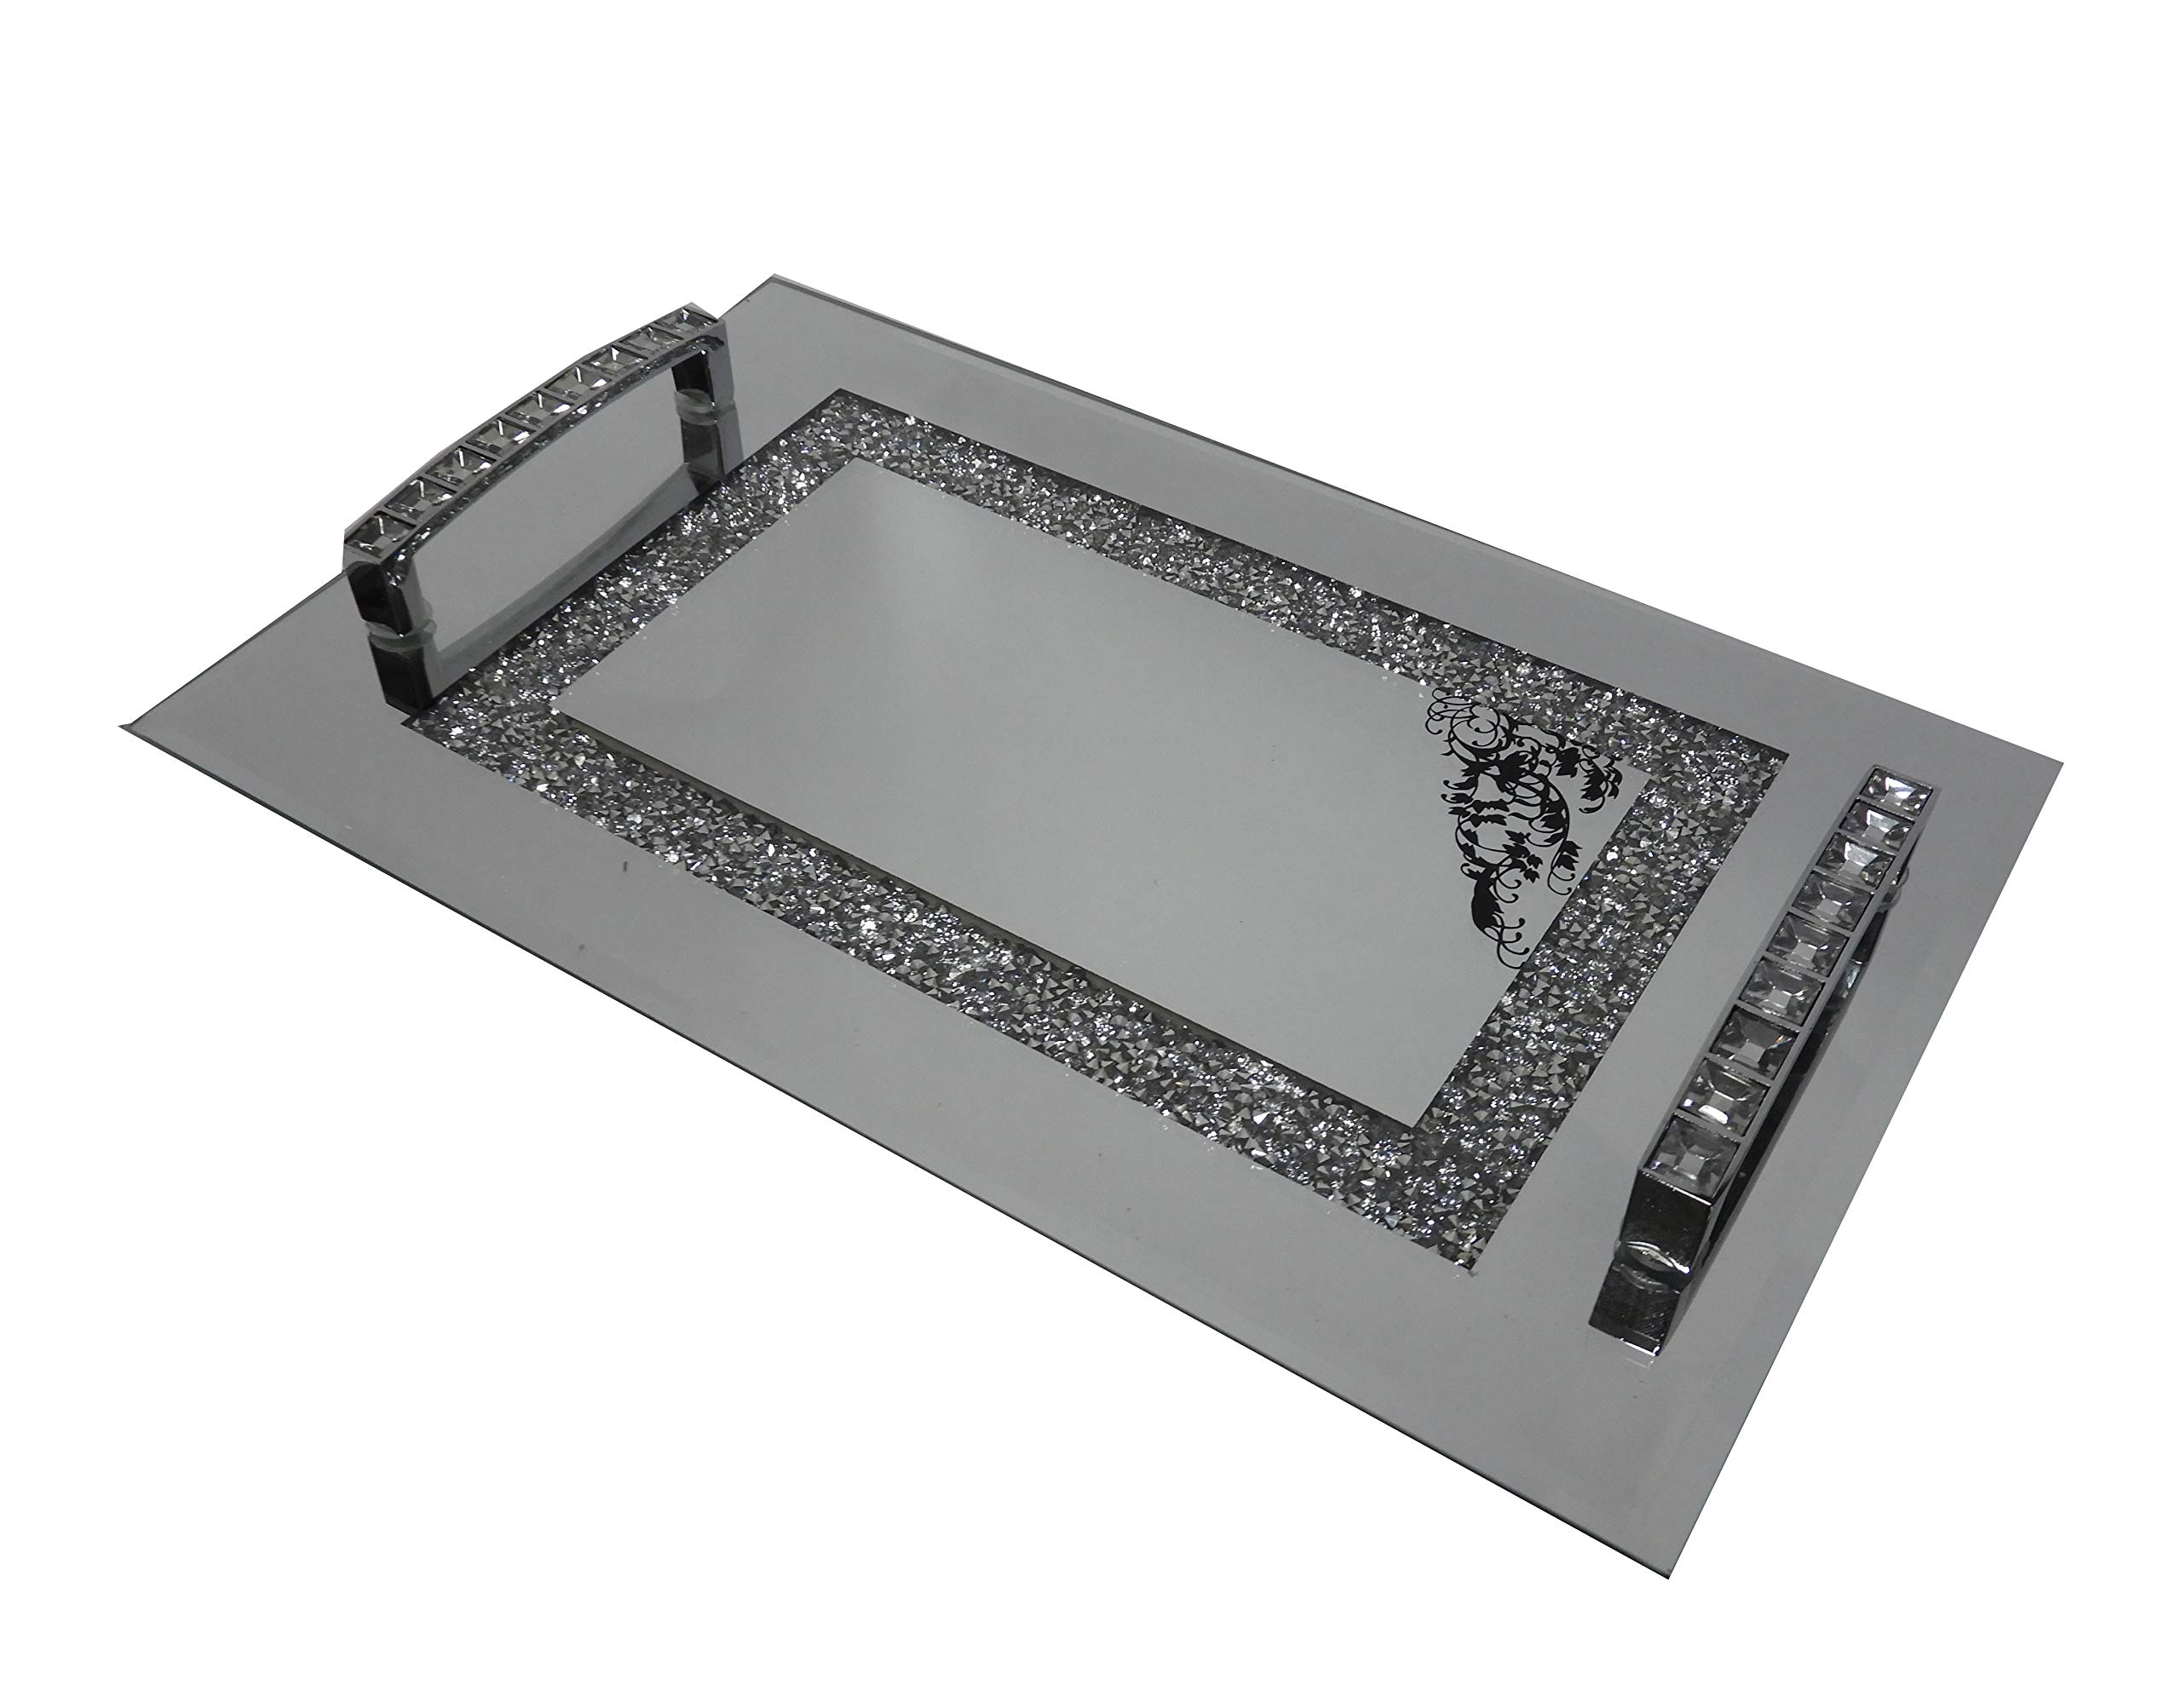 Mirrored Vanity Tray - Perfect for Perfumes, Facial Supplies, Soaps - Beaded Accents and Handles (Silver) by Homestyle